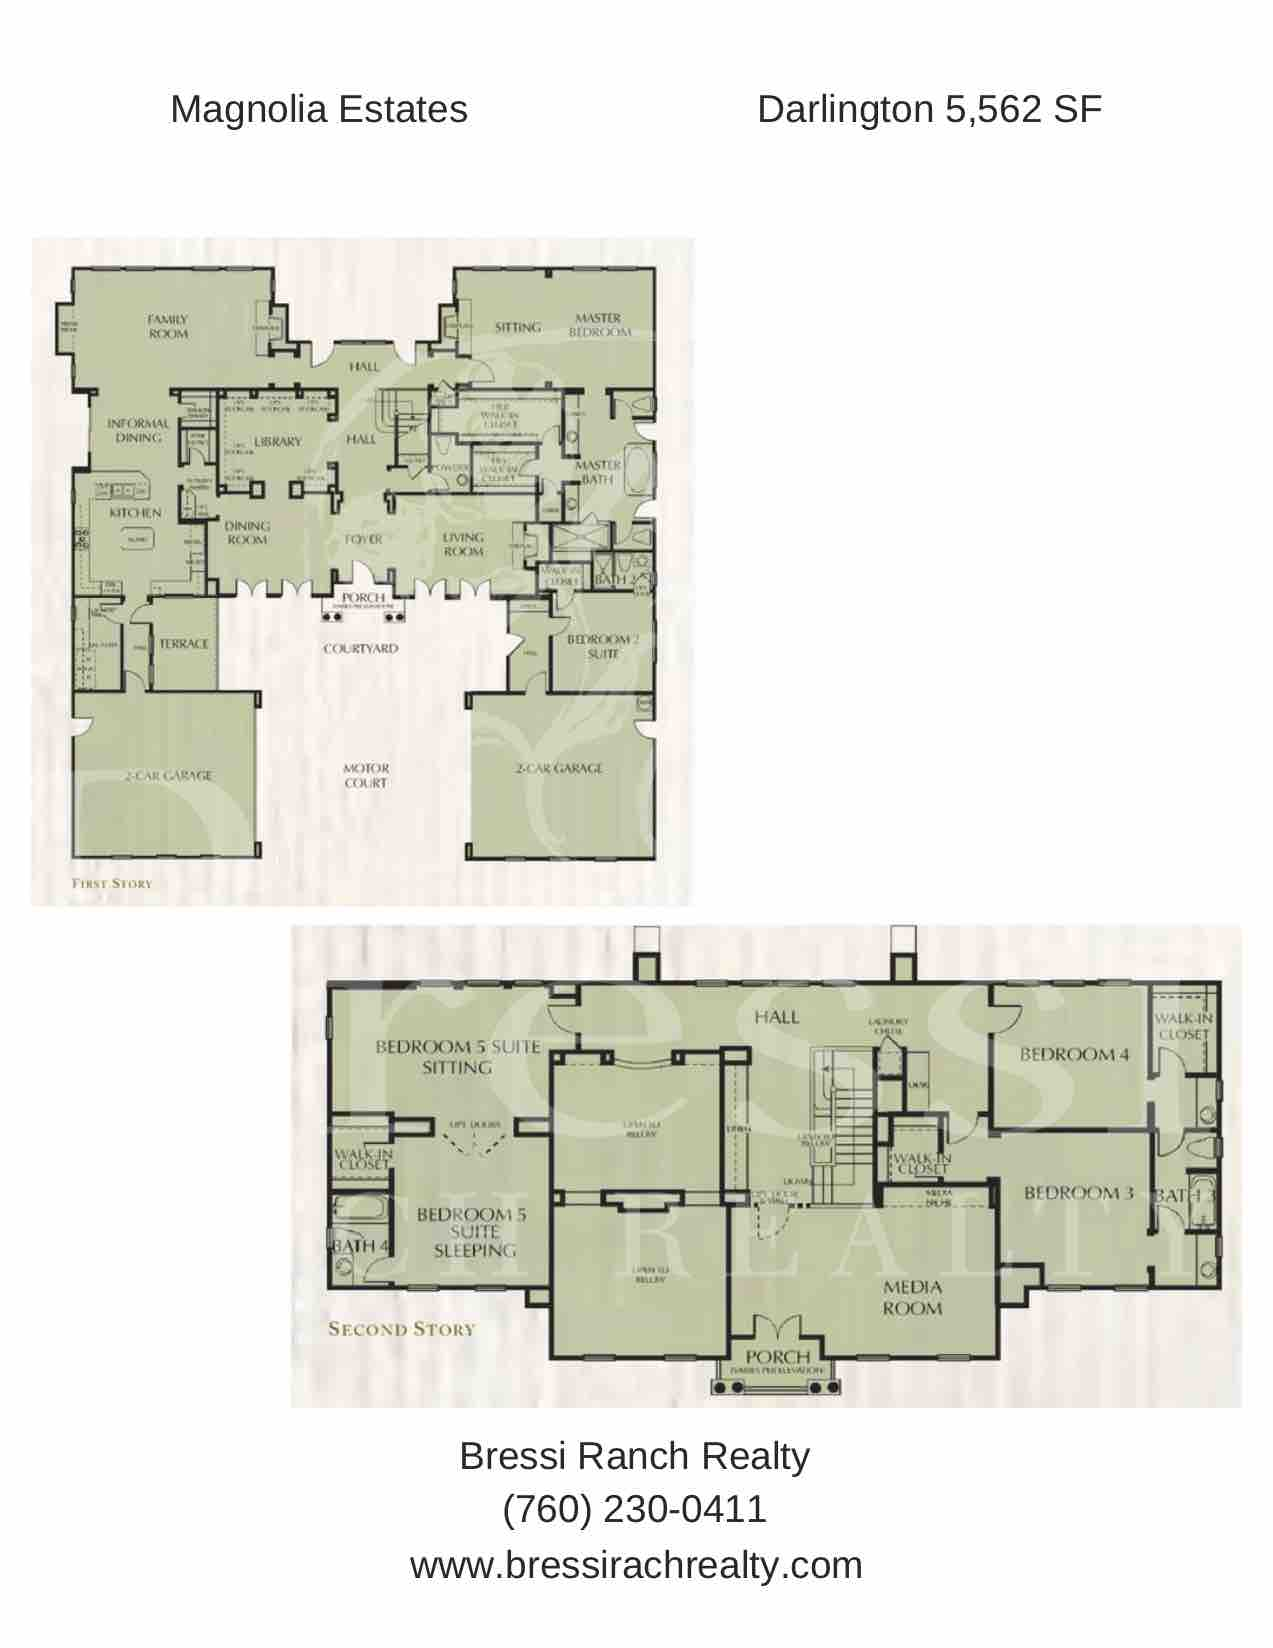 Magnolia Estates Darlington Floor Plan Bressi Ranch